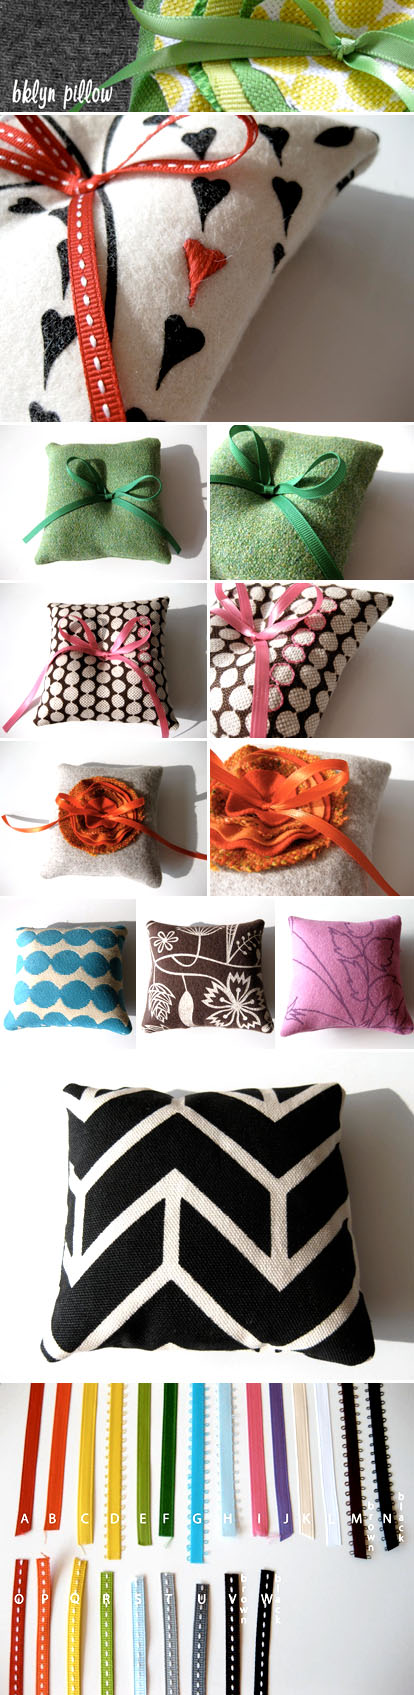 handmade wedding ring pillows from Bklyn Pillow